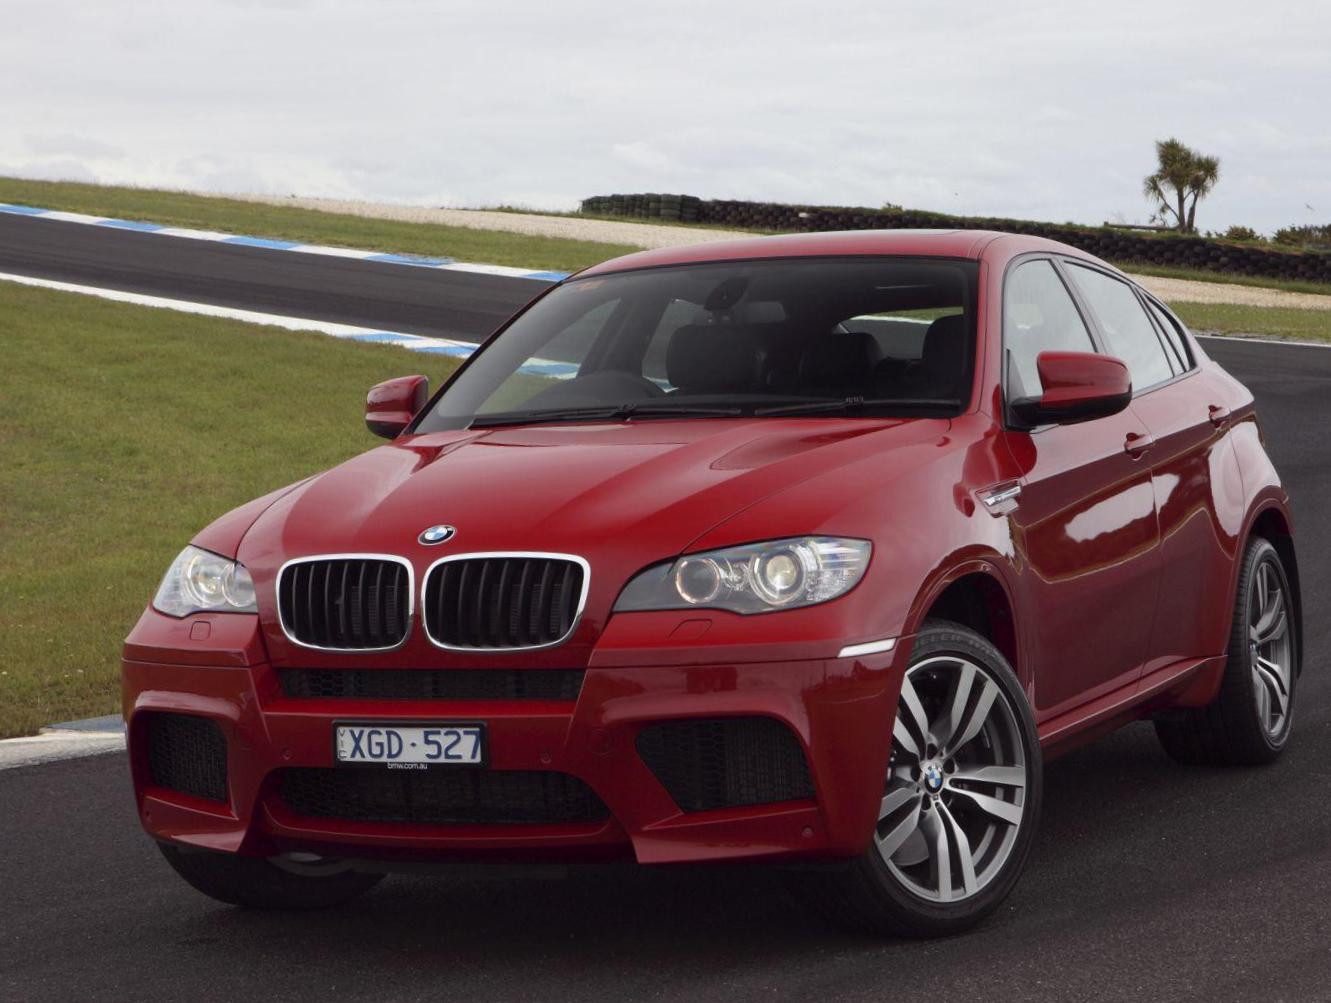 BMW X6 (E71) Specifications hatchback